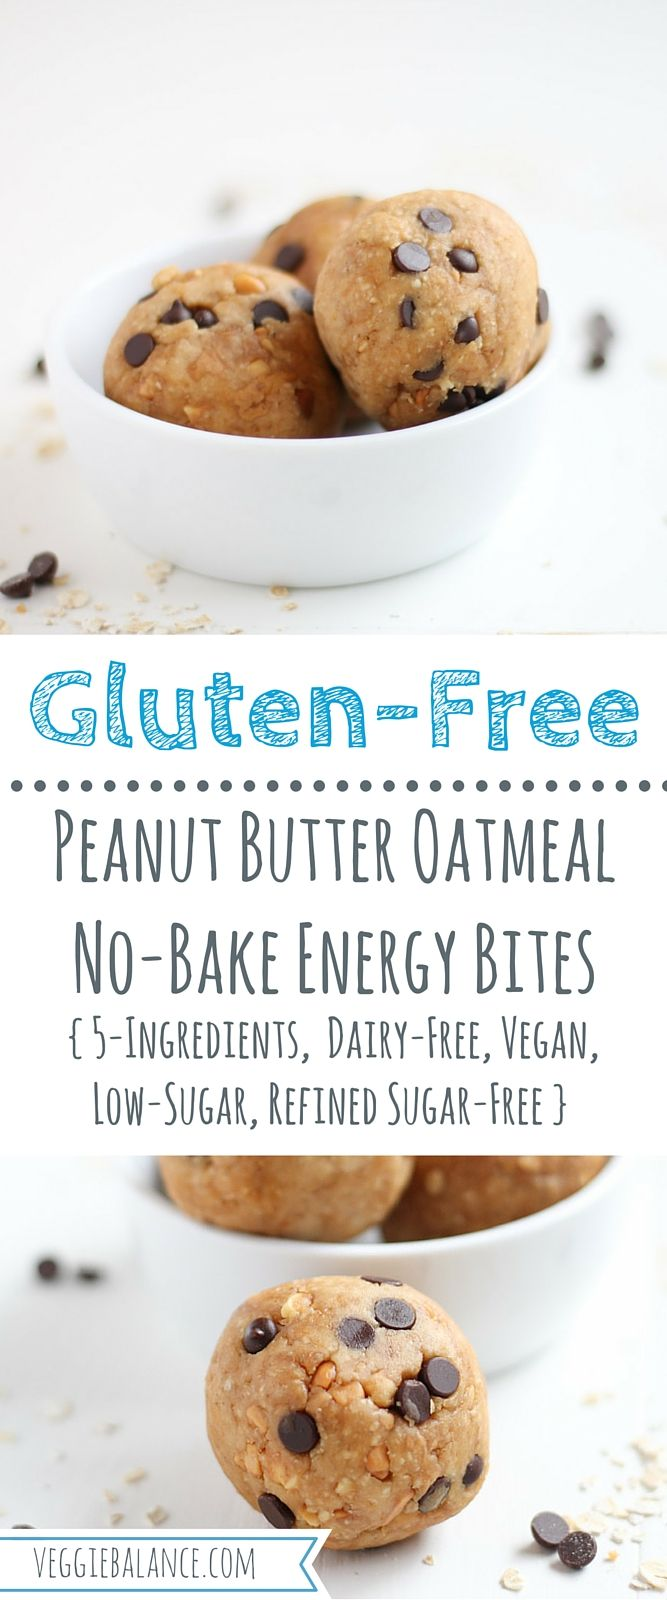 No Bake Energy Bites {Peanut Butter Oatmeal}